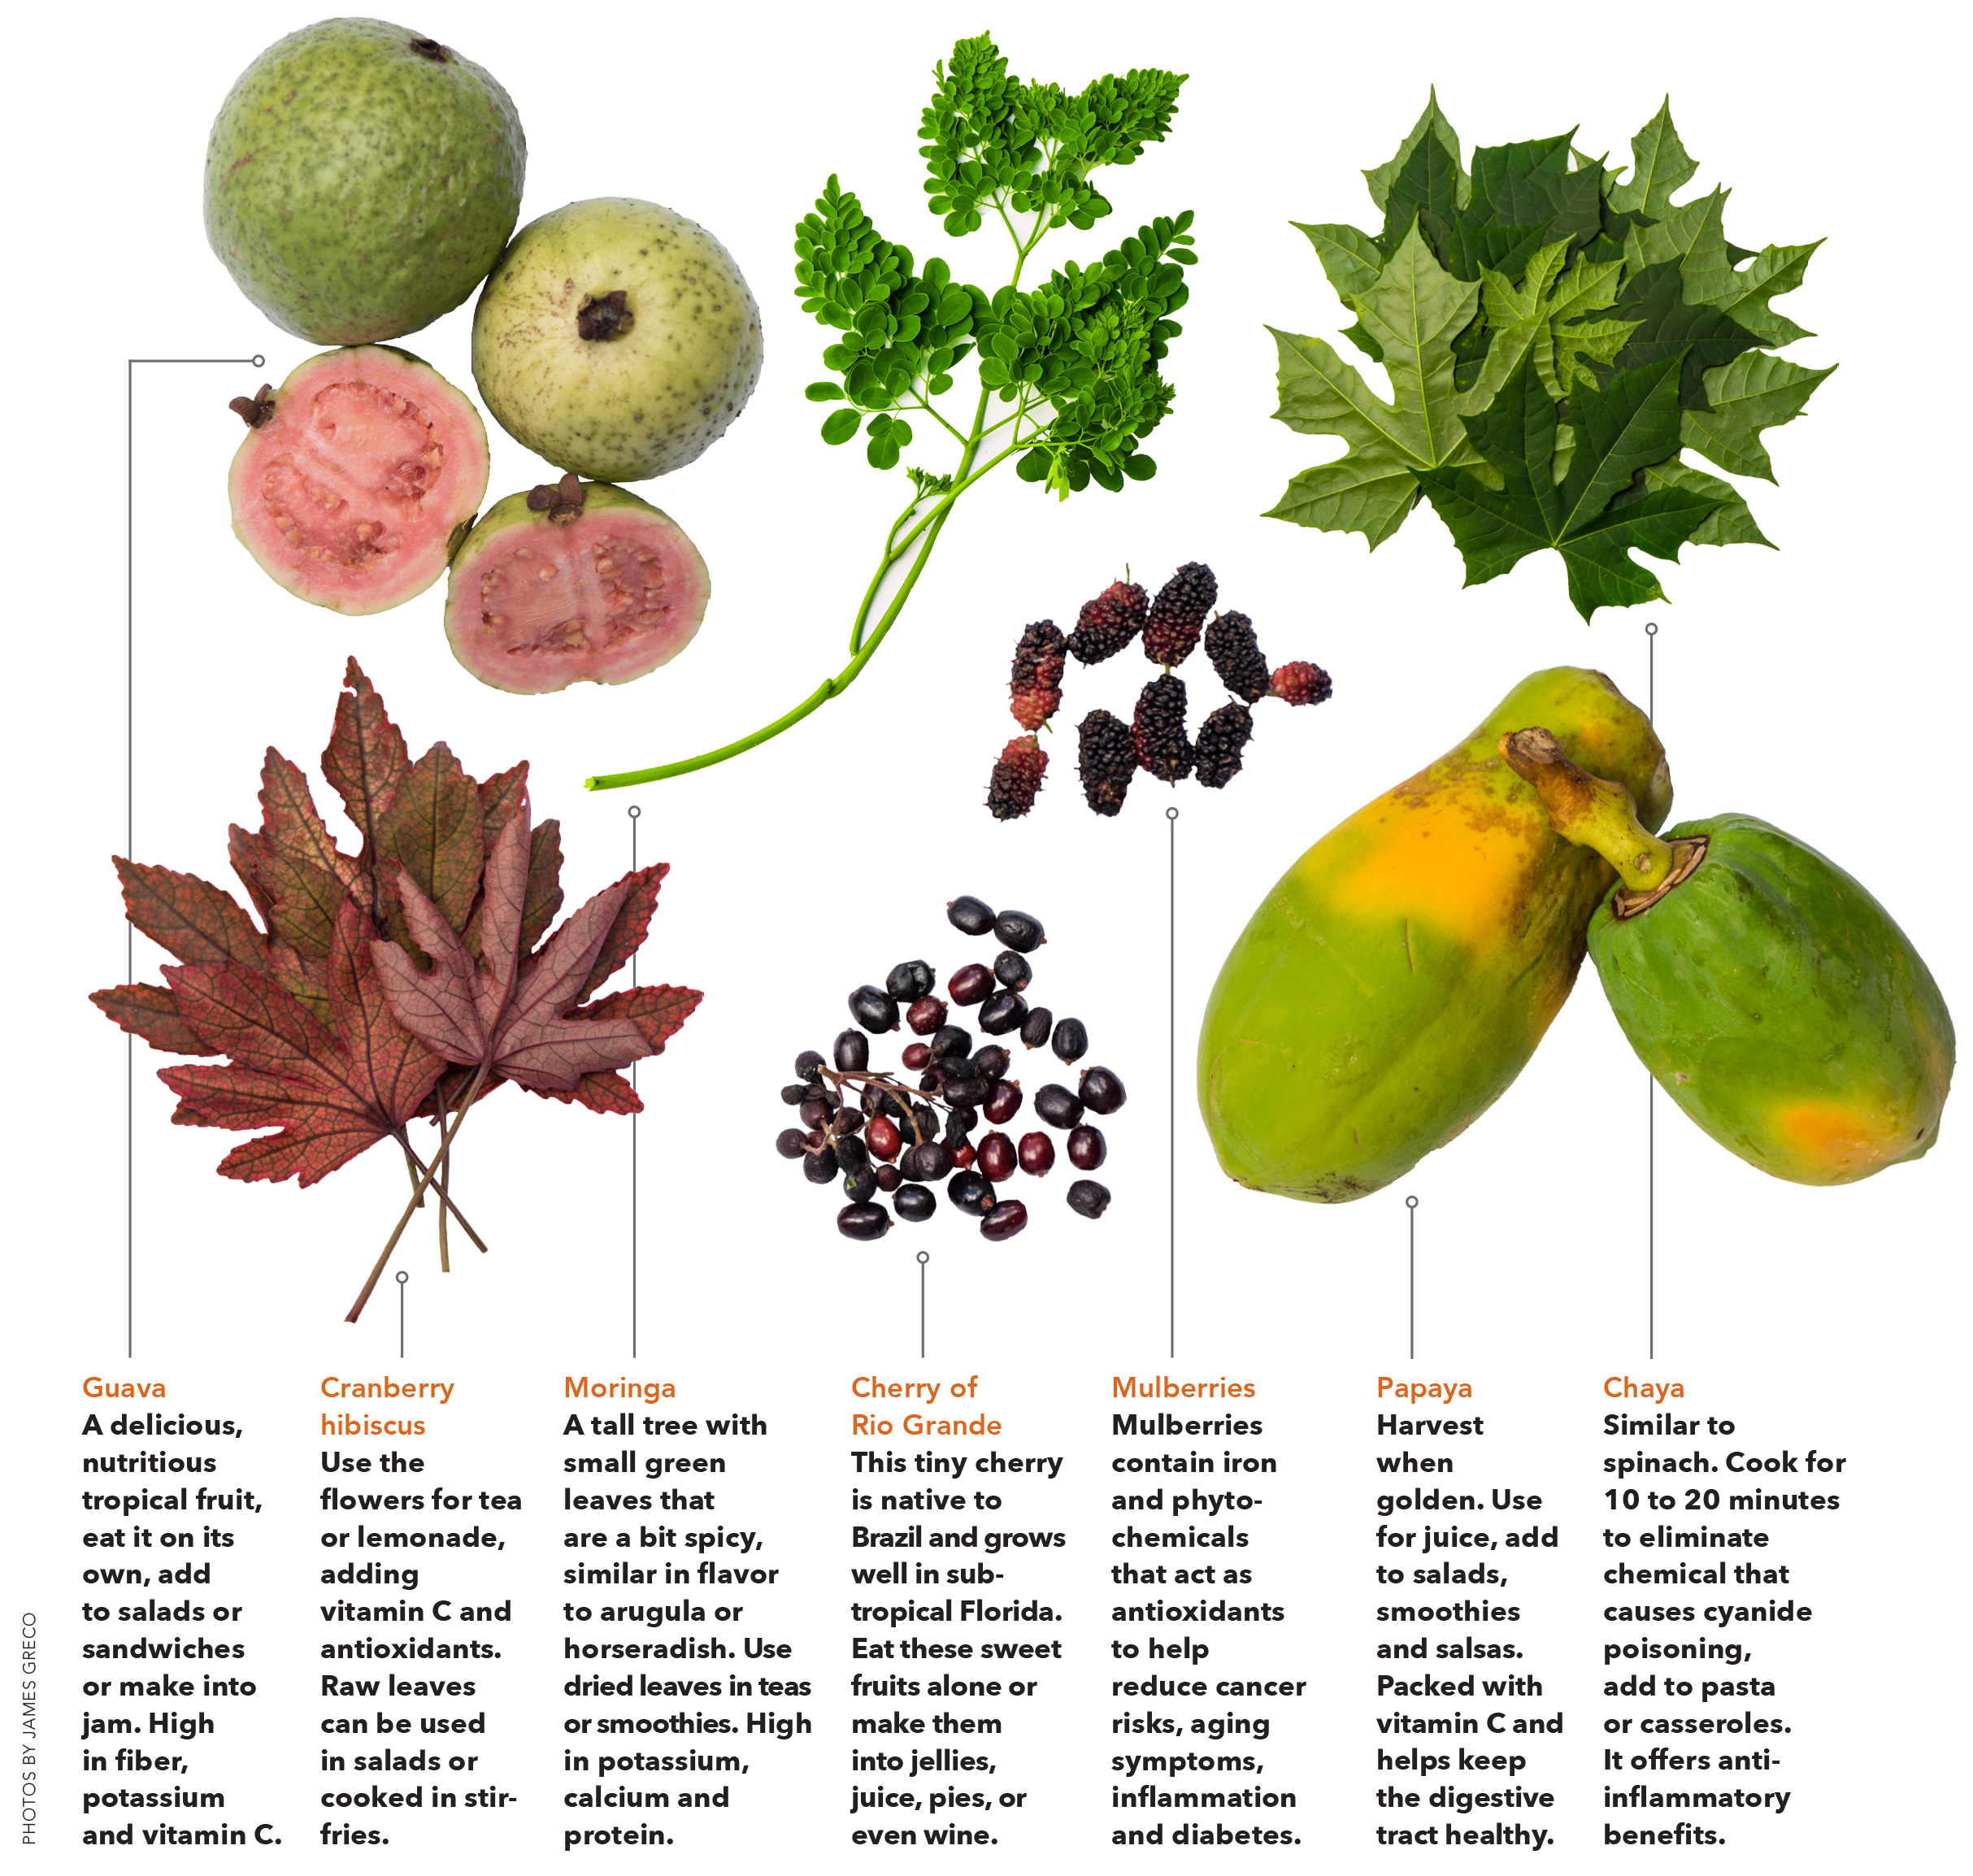 food forest image